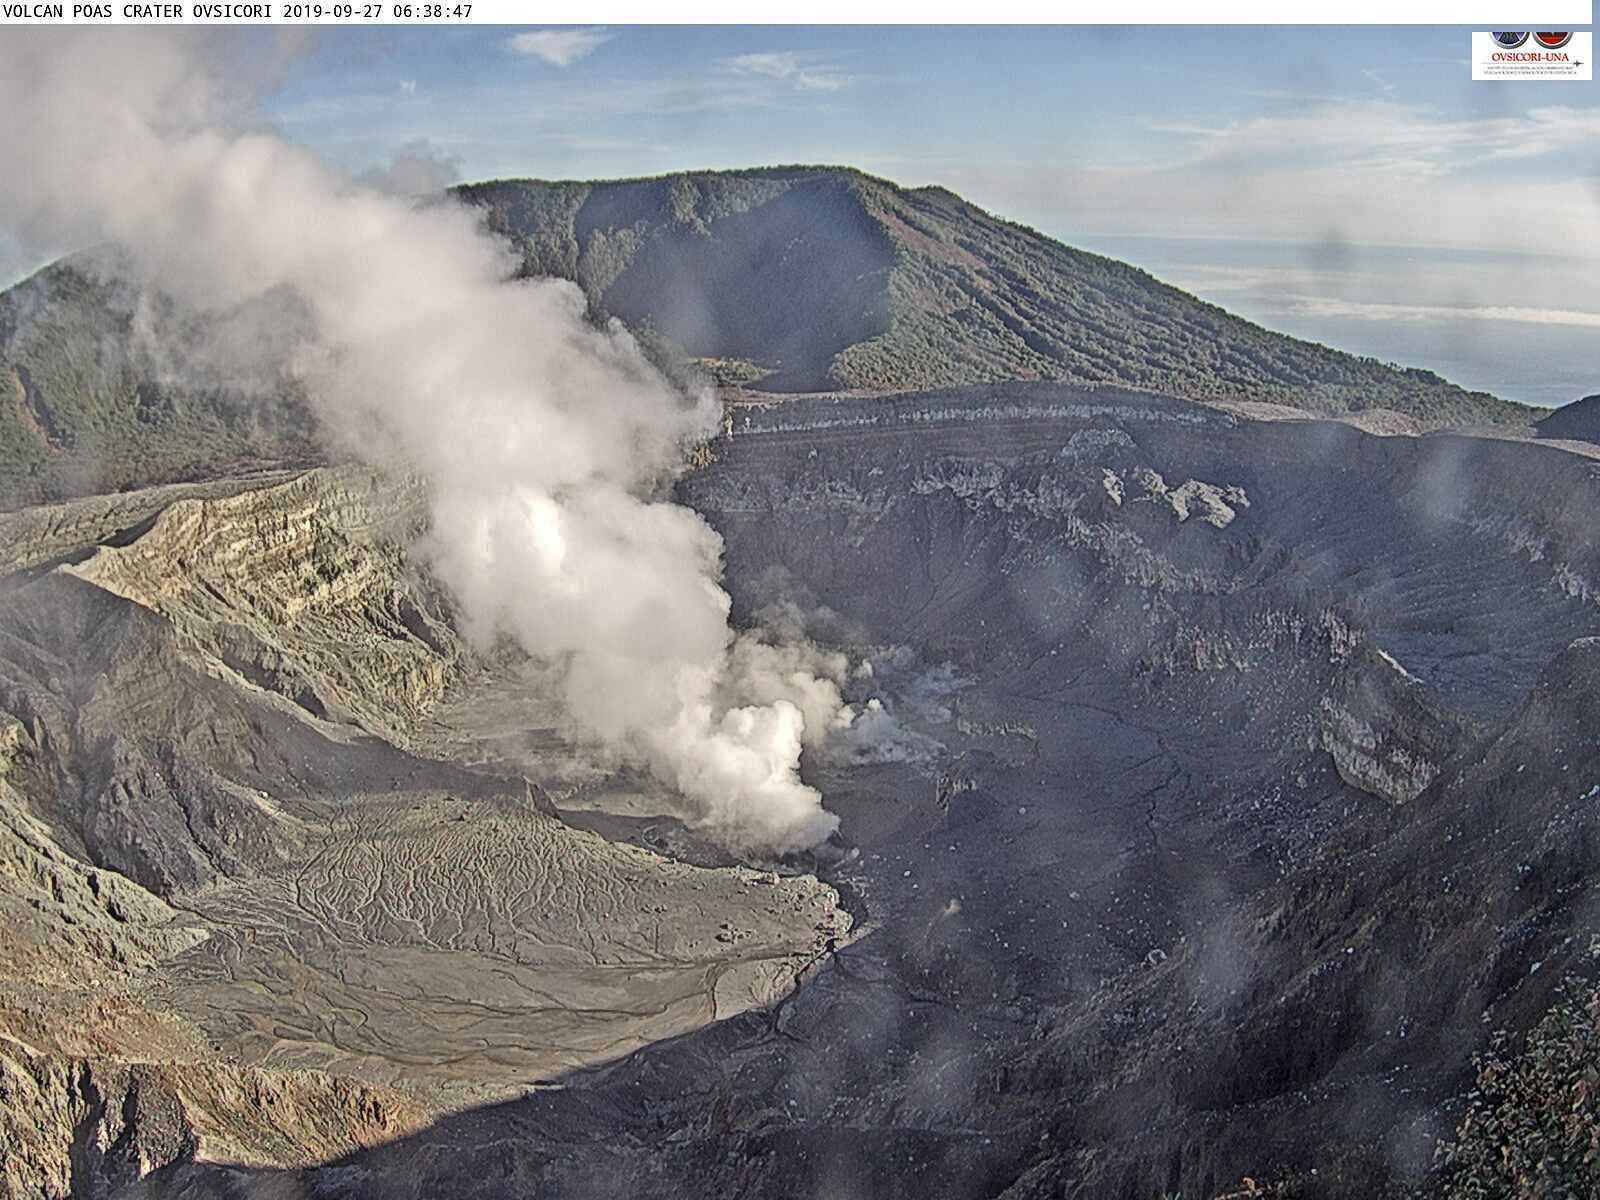 Poas - degassing loaded with aerosols from 27.09.2019, respectively at 6:38 am and 8:56 am -webcam Ovsicori